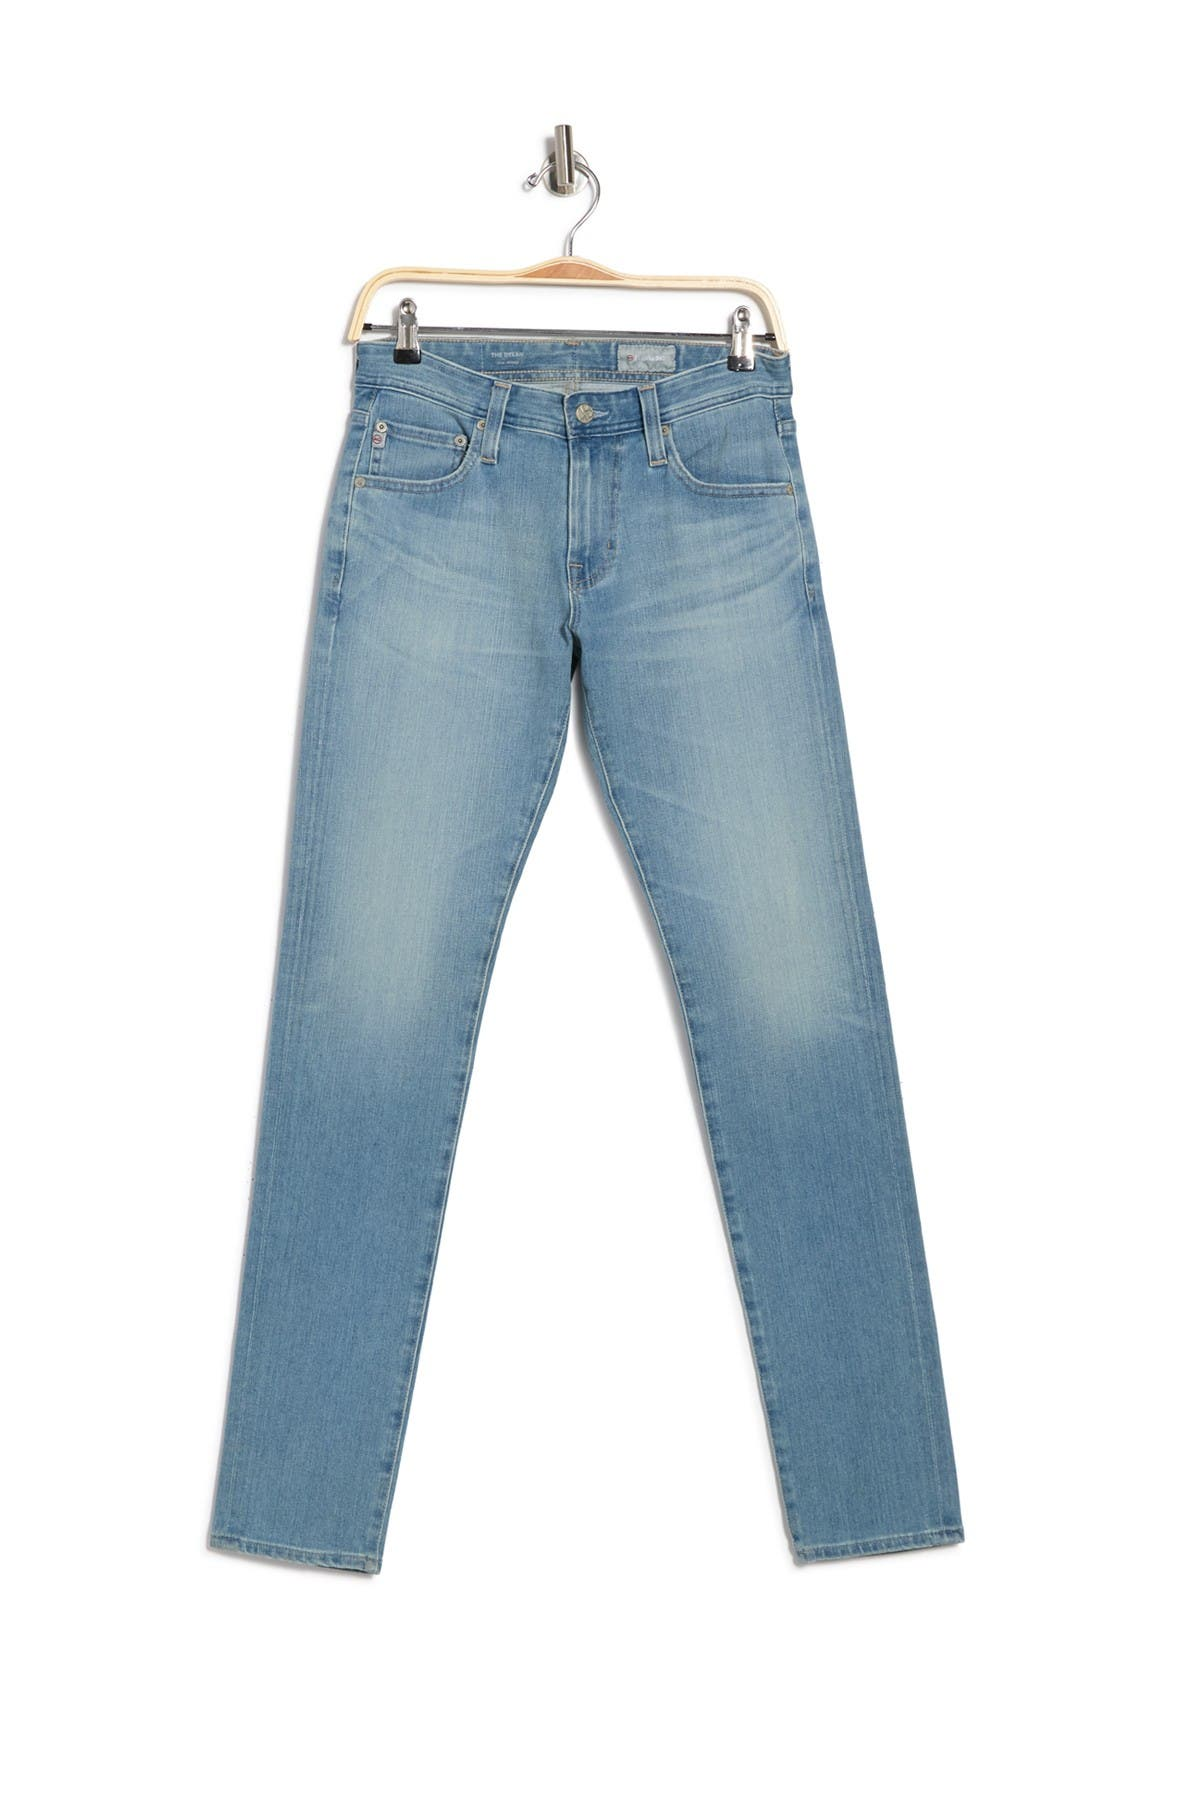 Image of AG Dylan Skinny Jeans